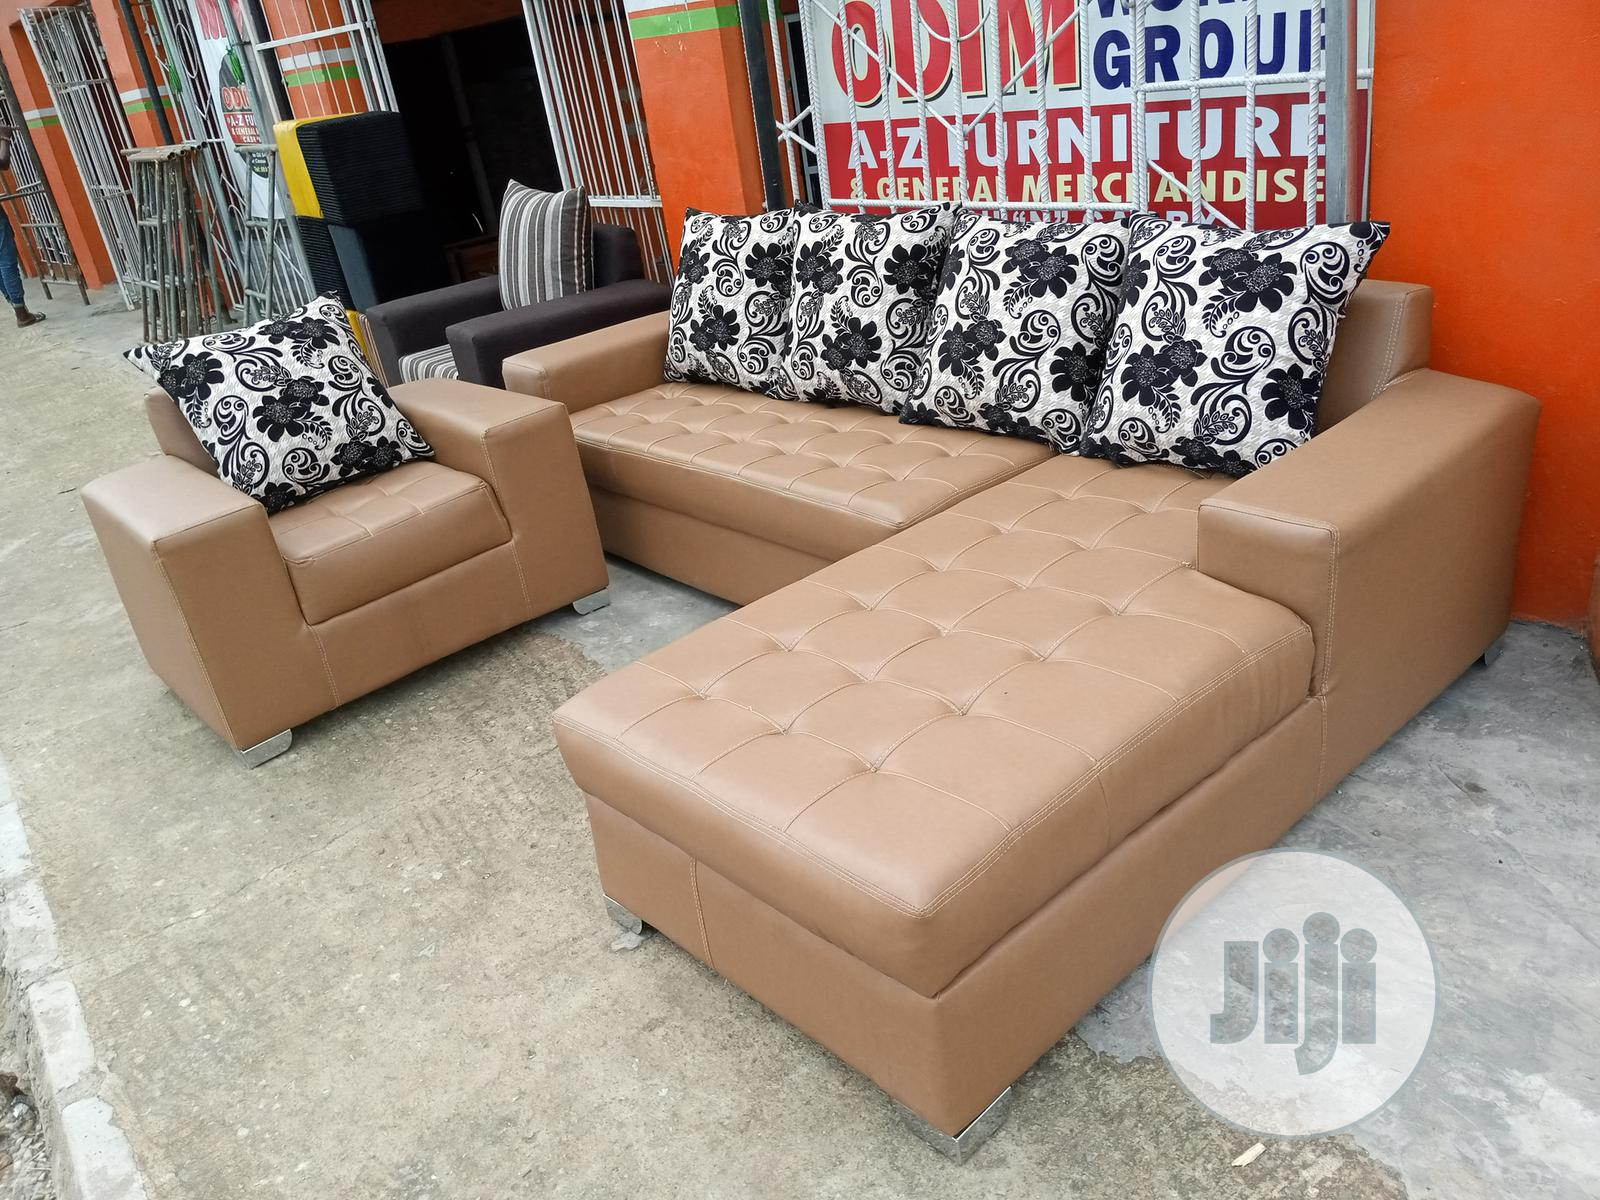 Archive: Set of L-Shaped Sofa With Single Seater Chair - Leather Couches